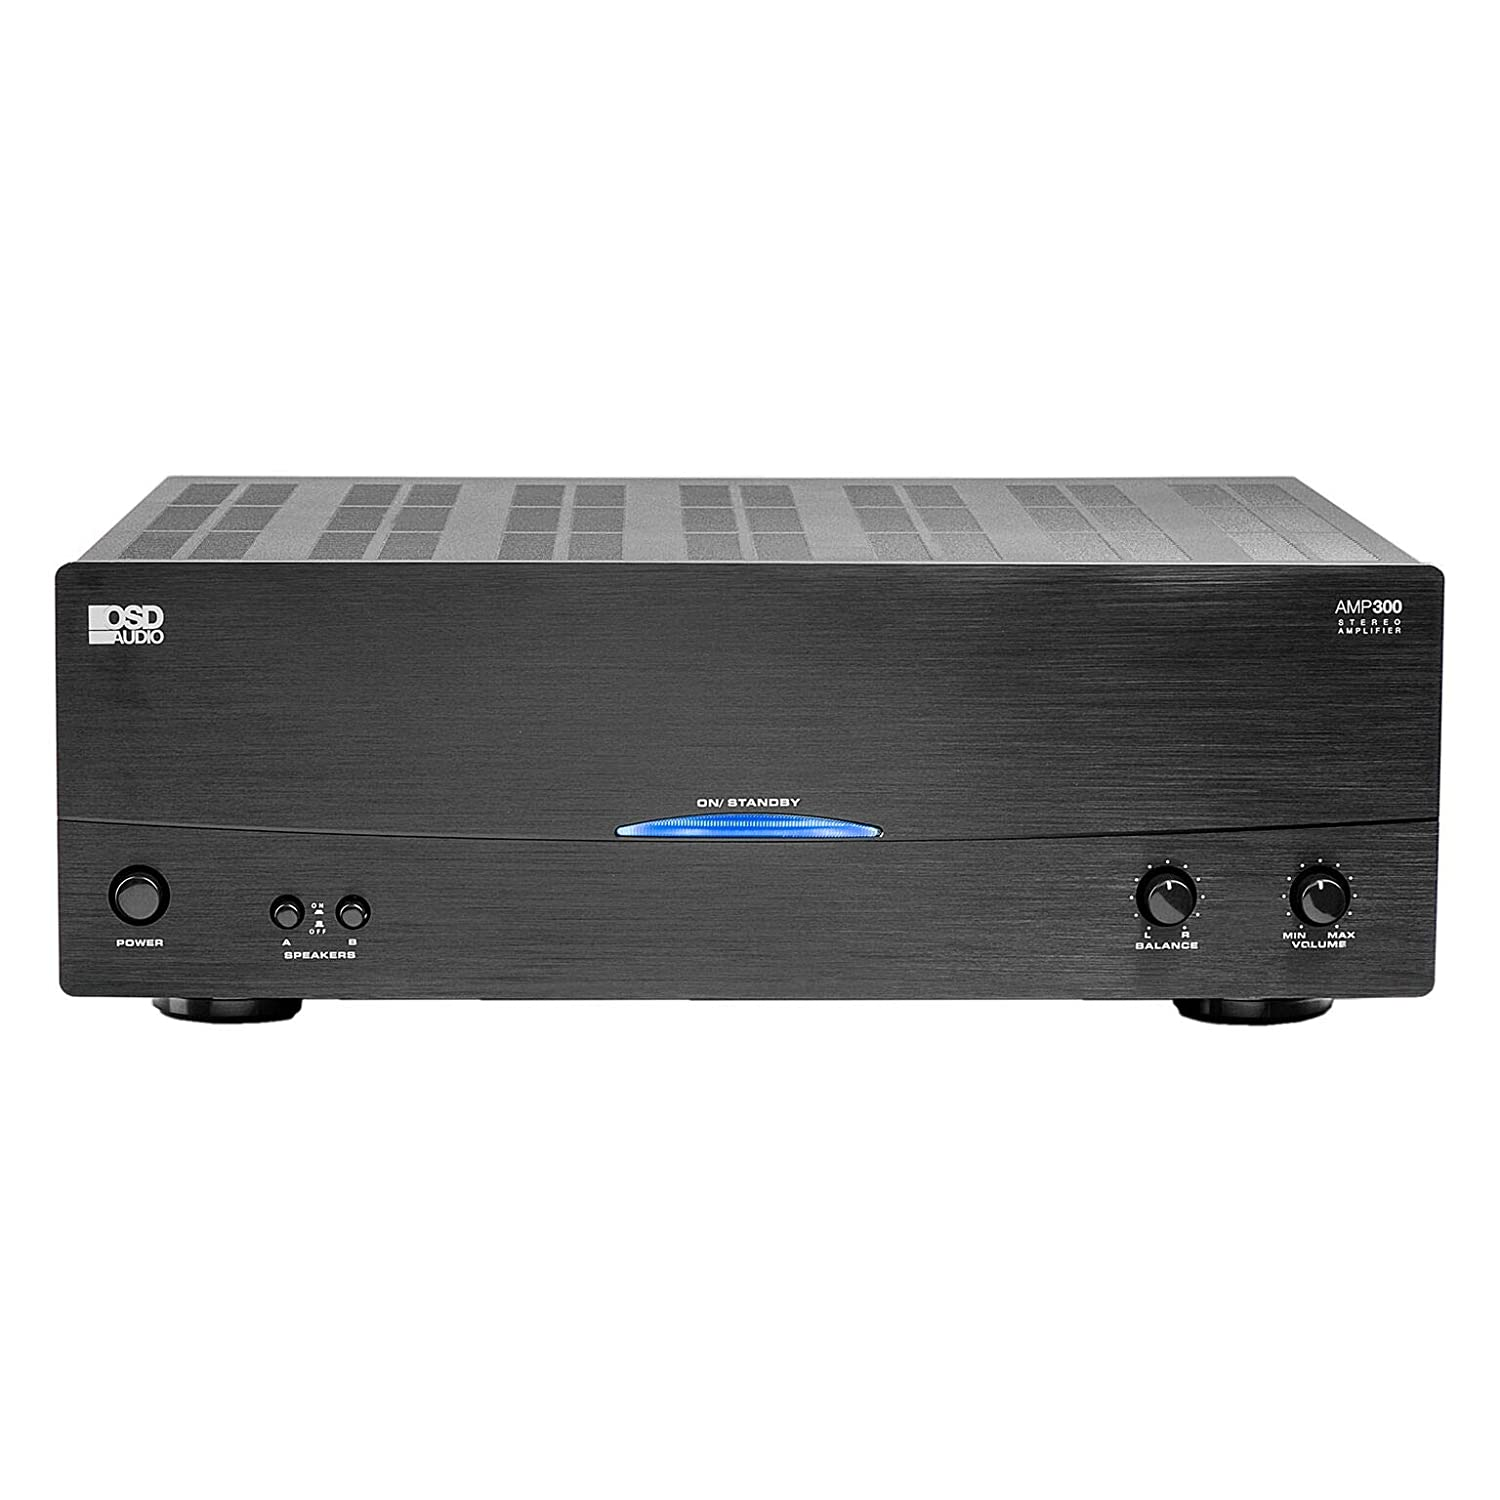 Osd Amp300 Class A B Toroidal Power High Current 2 Ohms Stable Stereo Bridgeable 350w Amplifier Dual Sourcing And Speaker Level Input Audio Circuit Explanation Diagram Source Home